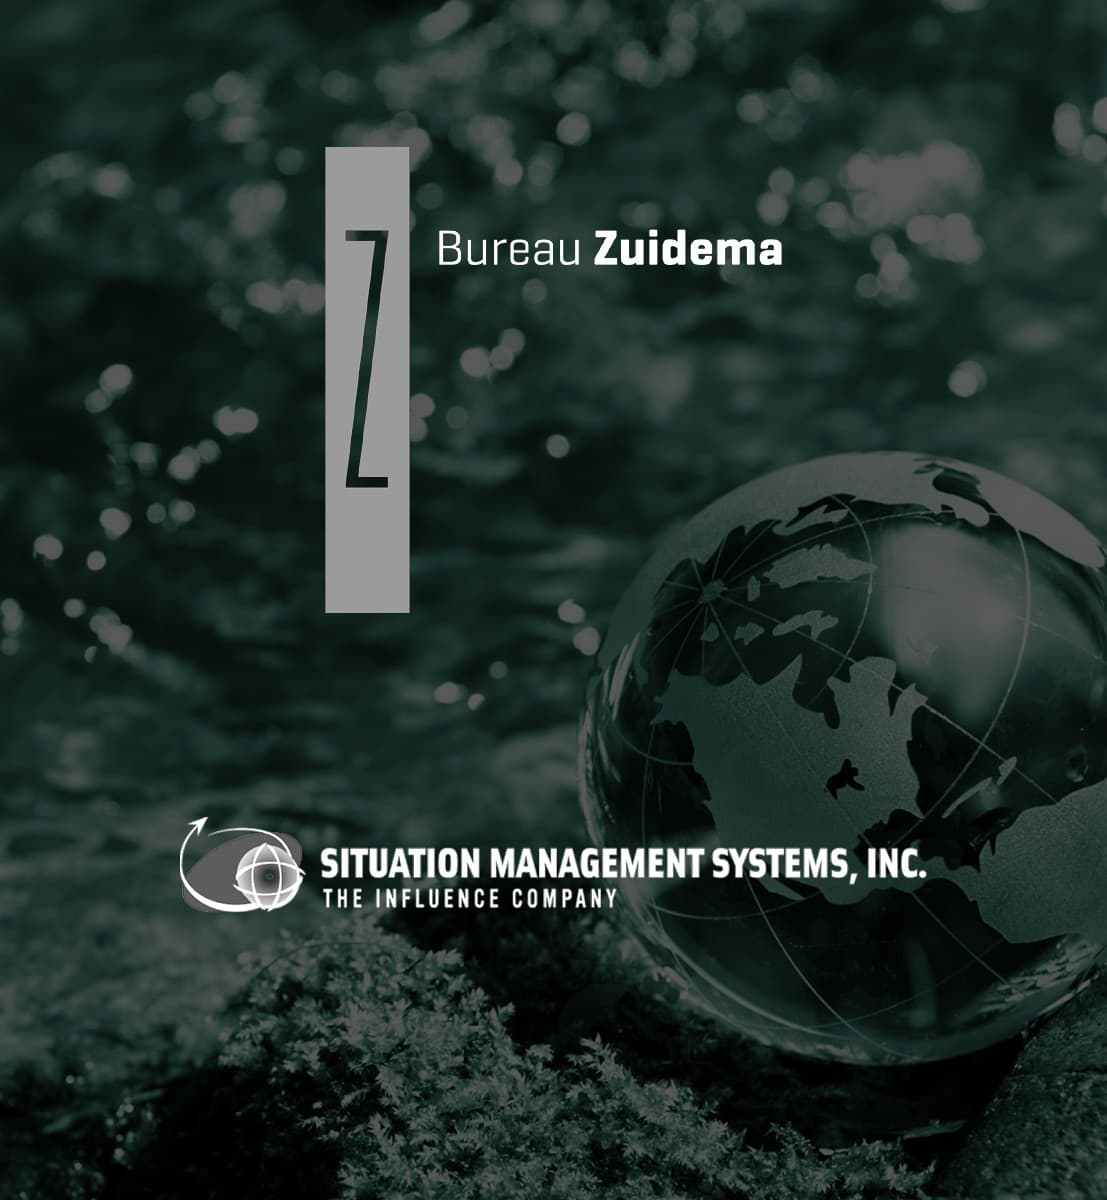 DEX international M&A advised Bureau Zuidema on the acquisition of the IP and all business in Europe, Middle East and Africa of Situation Management Systems, Inc.